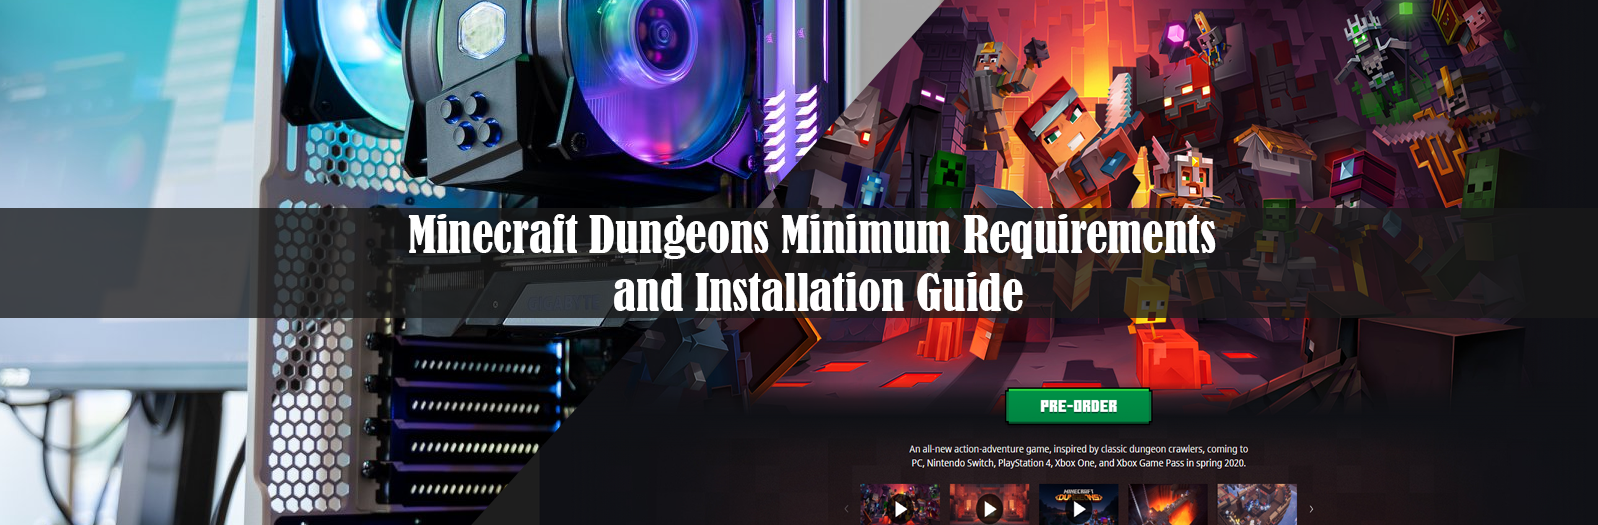 Minecraft Dungeons Minimum Requirements and Installation Guide